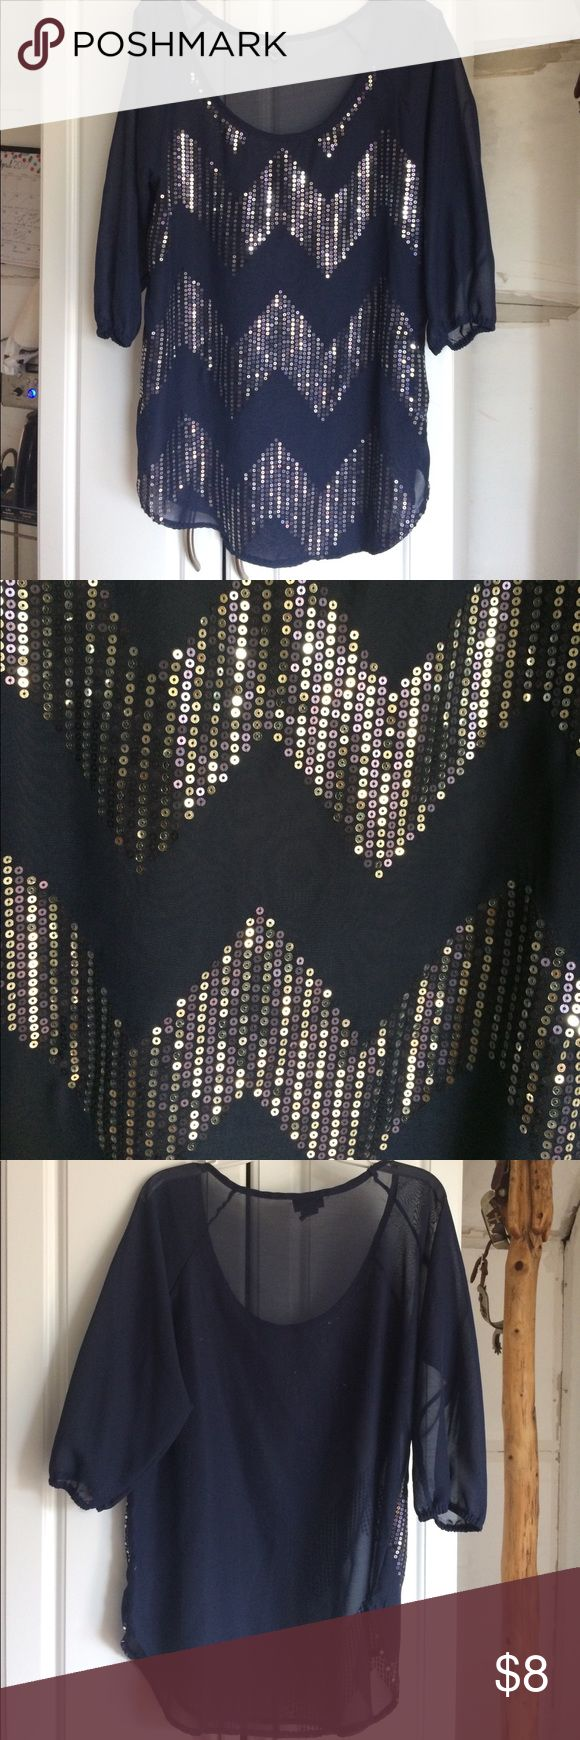 🎉SALE Blouse Navy blue no flaws and is in great condition. Very sparkly and it is sheer meaning it is see trough. Loose fit. Rue21 Tops Blouses